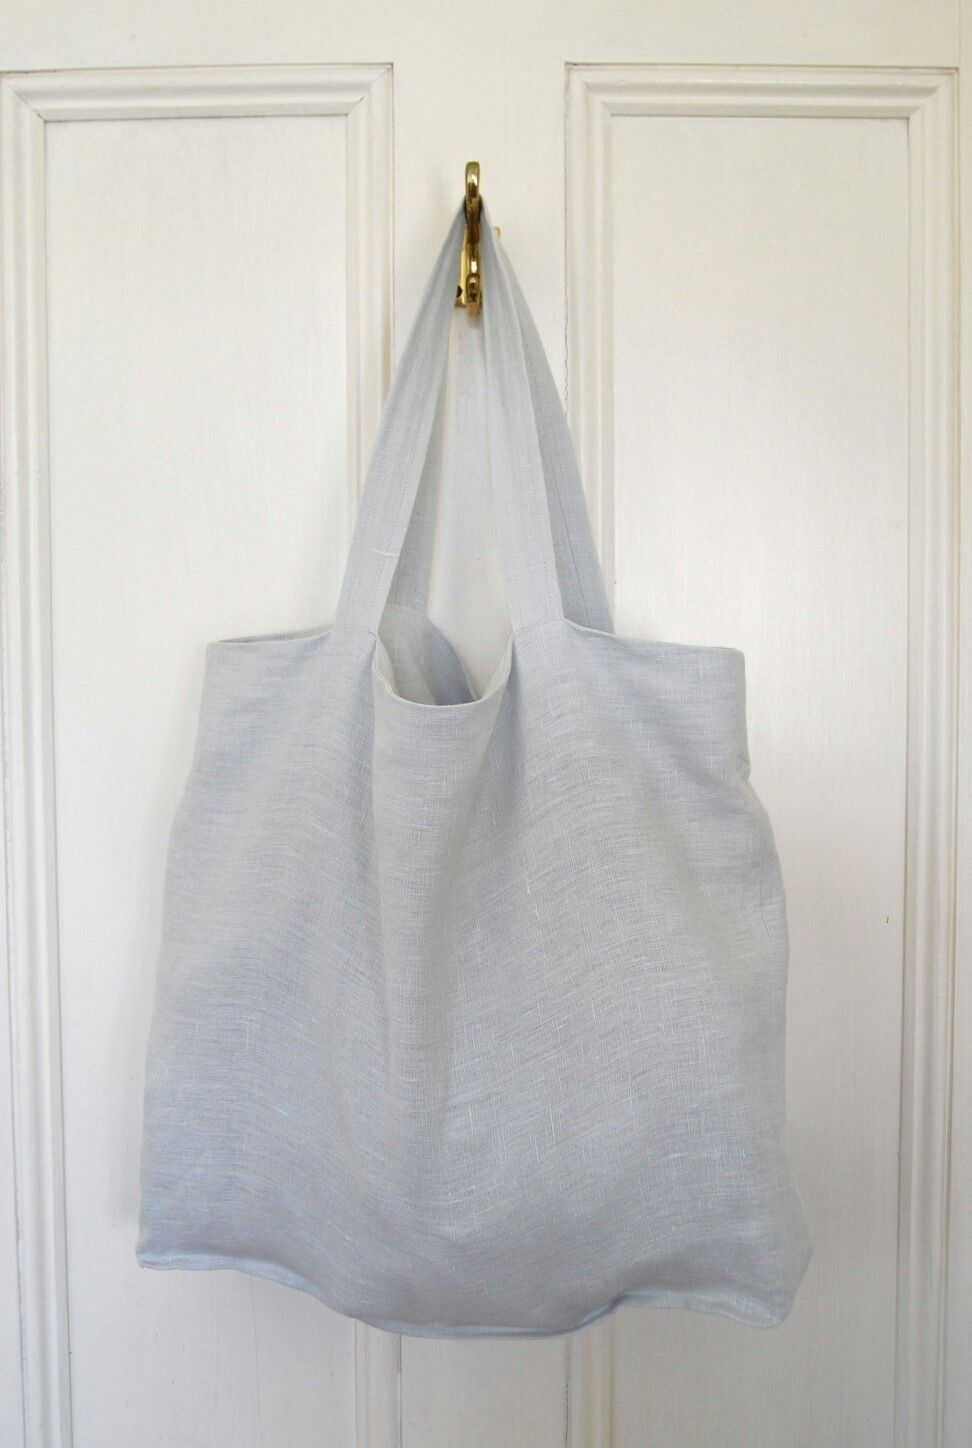 88b2eea73 100% pure linen tote bag, market bag in a beautiful silve/grey shade.  Available at etsy.com.